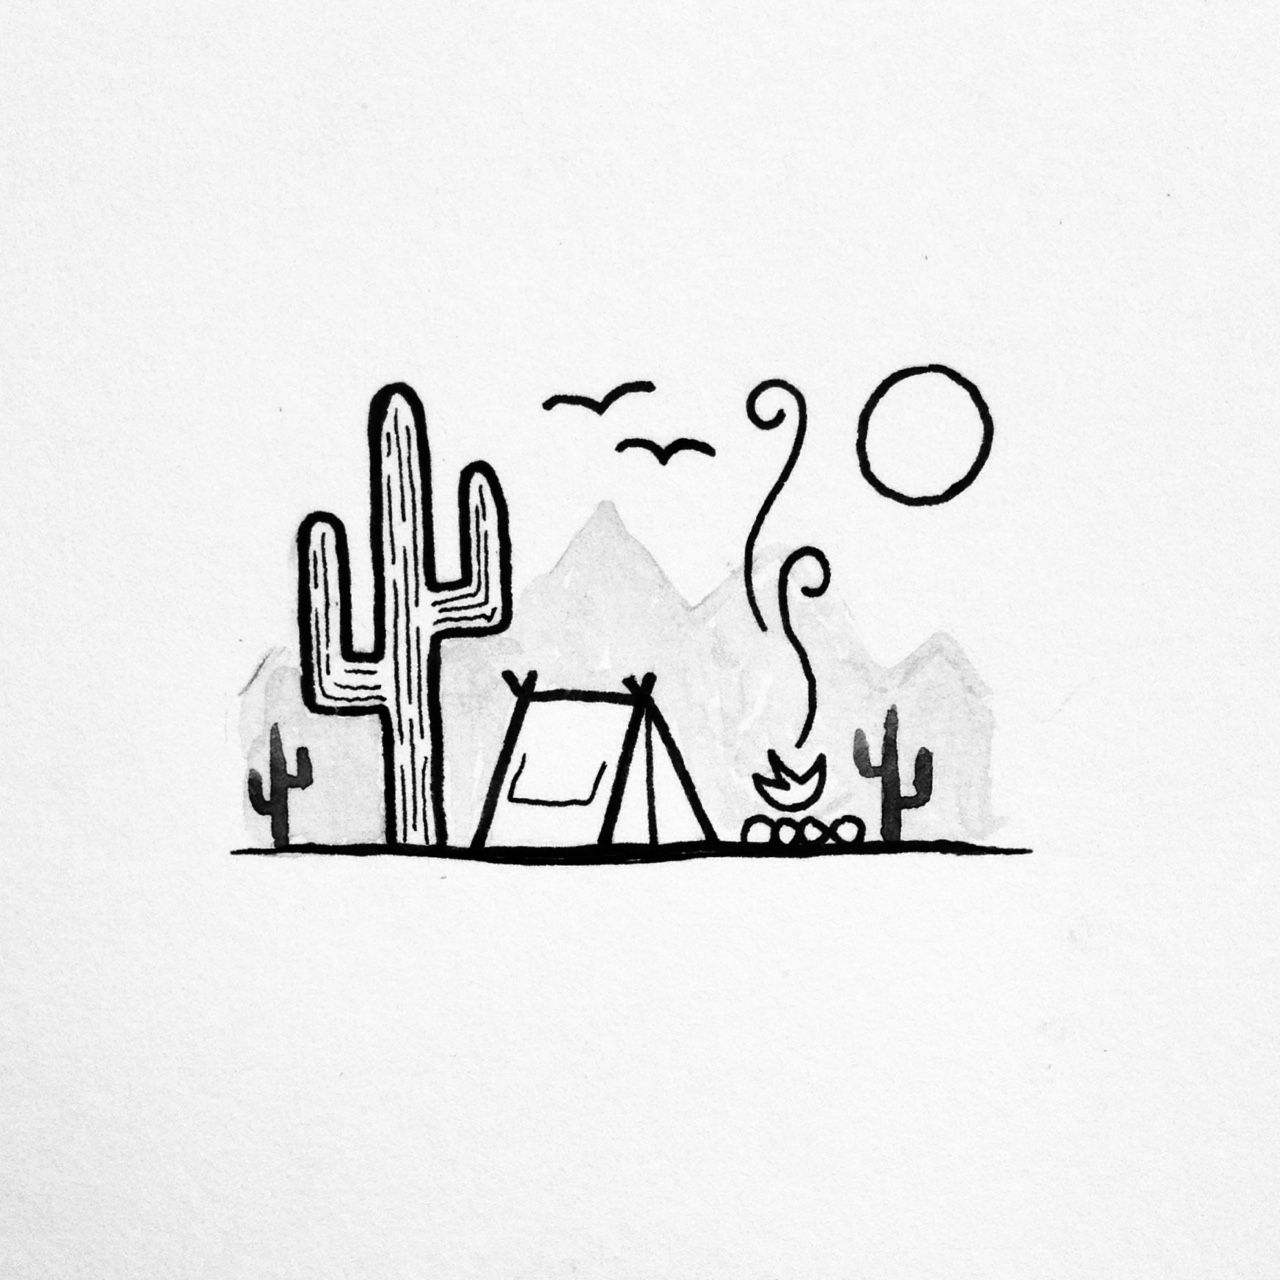 Summer camp • Idée de dessin simple d'une tente de camping ...